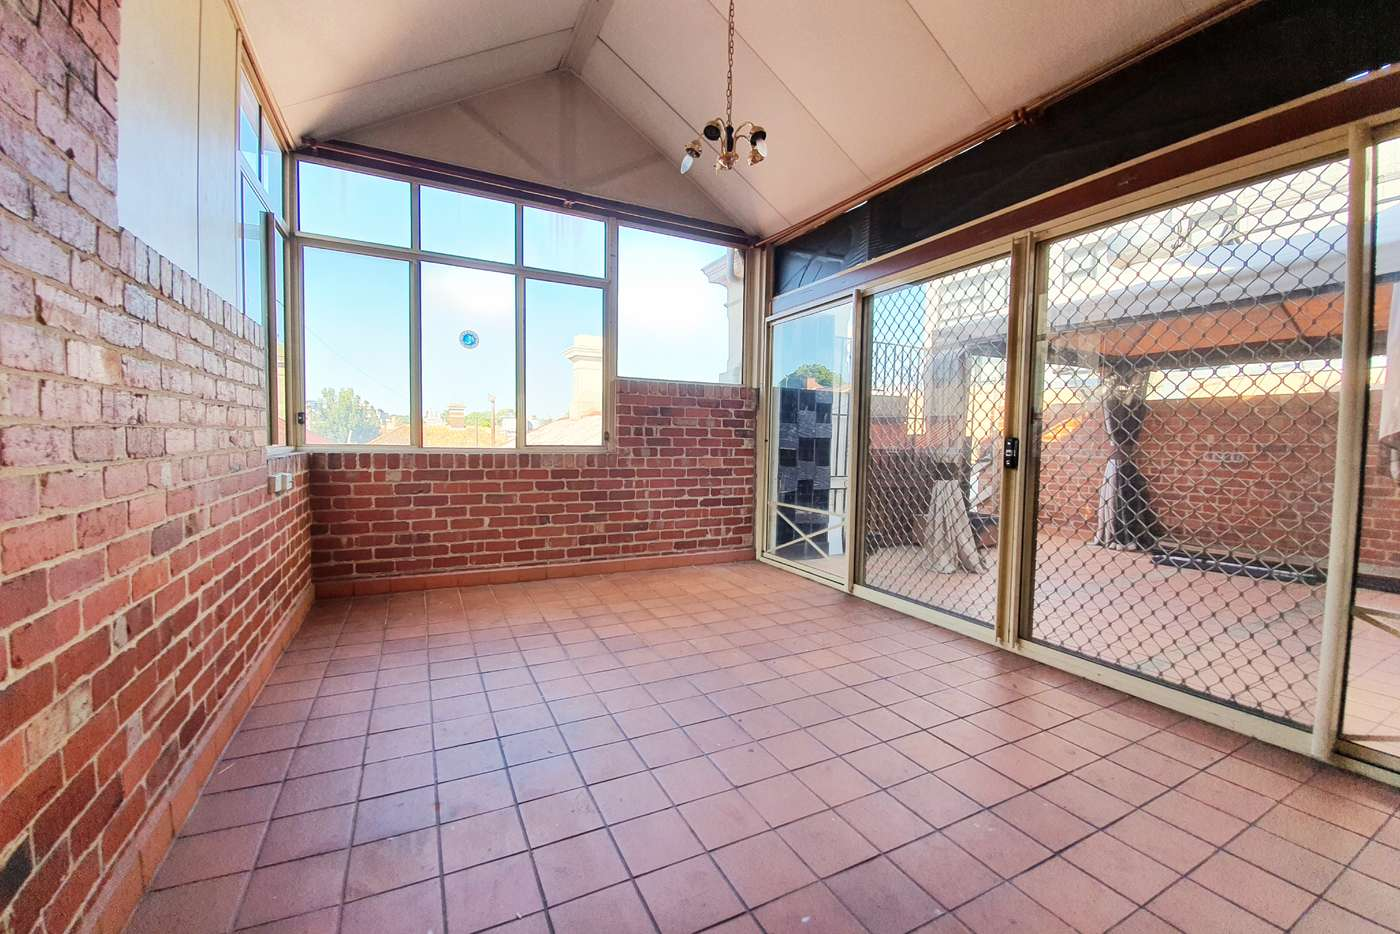 Seventh view of Homely apartment listing, 1 Fawkner Street, St Kilda VIC 3182